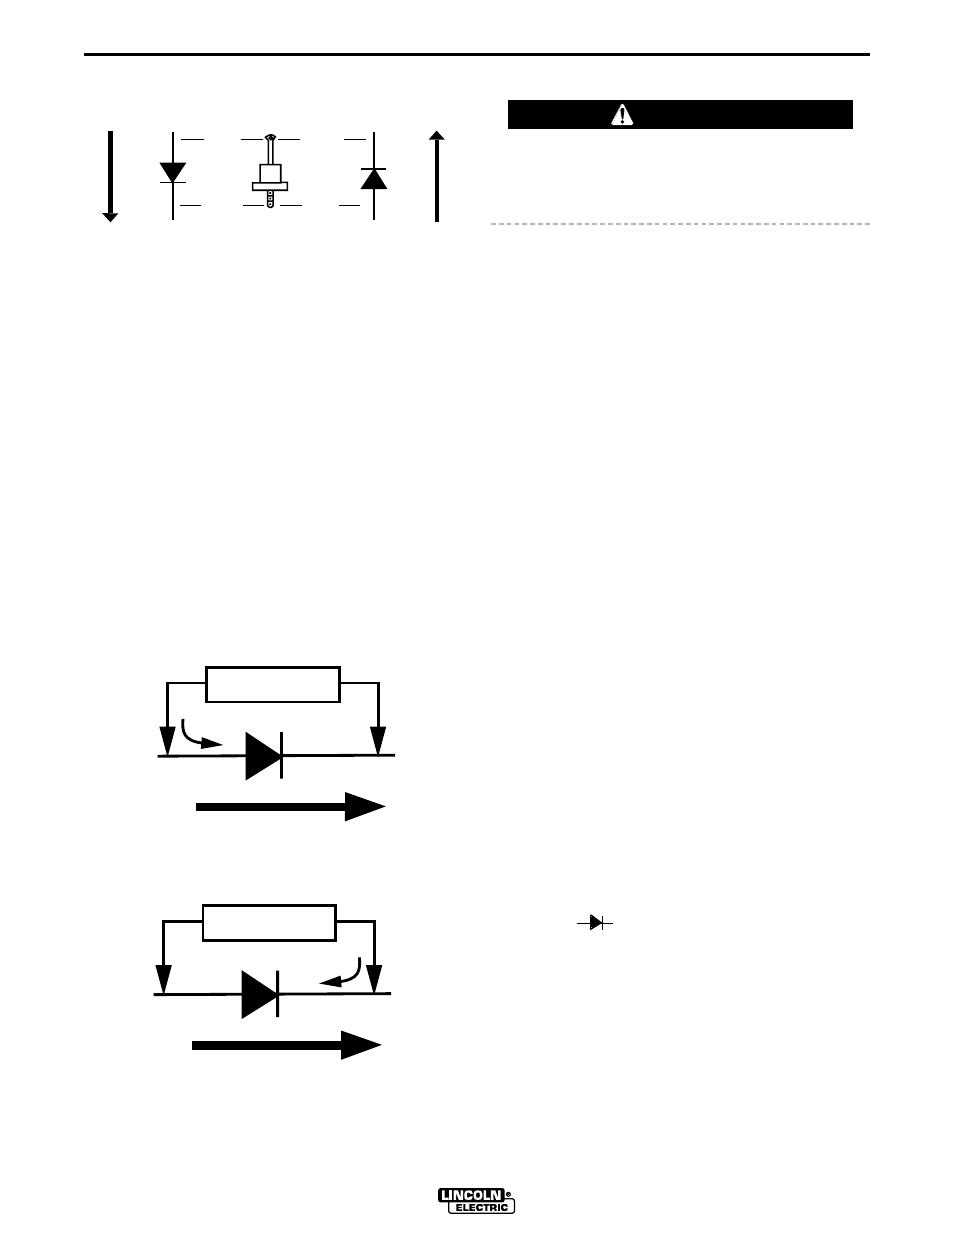 medium resolution of troubleshooting caution lincoln electric im568 sam 400 perkins diesel user manual page